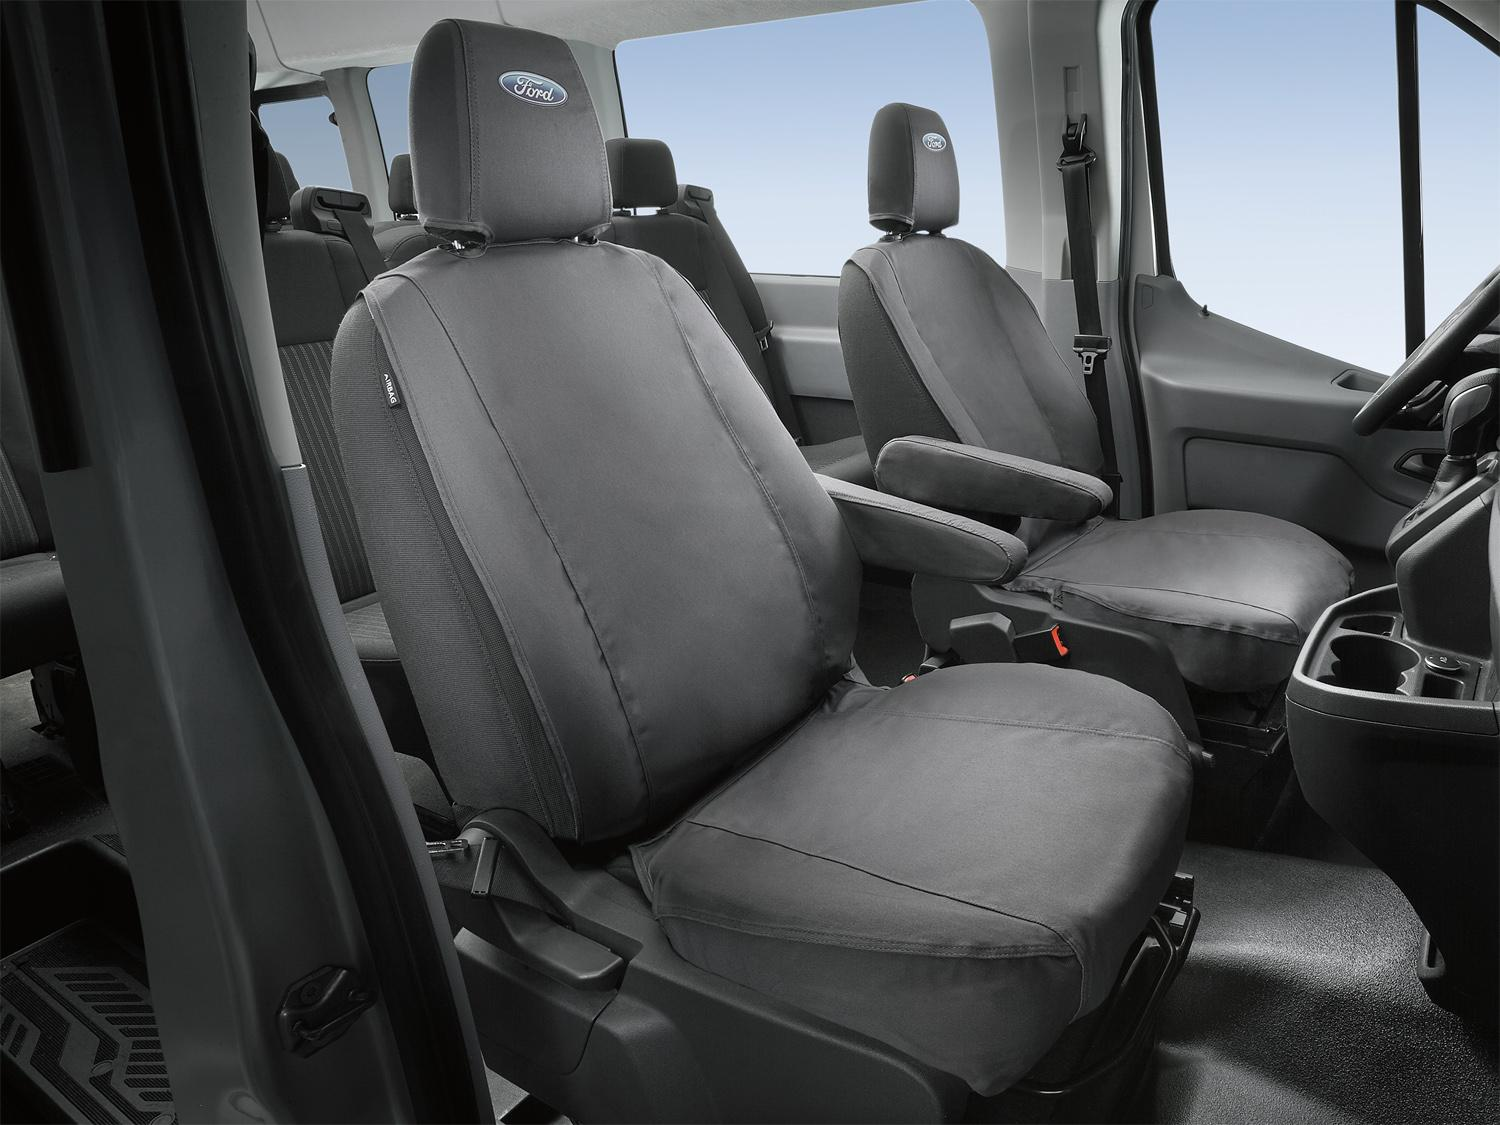 Seat Covers - Front, 40/20/40, Charcoal